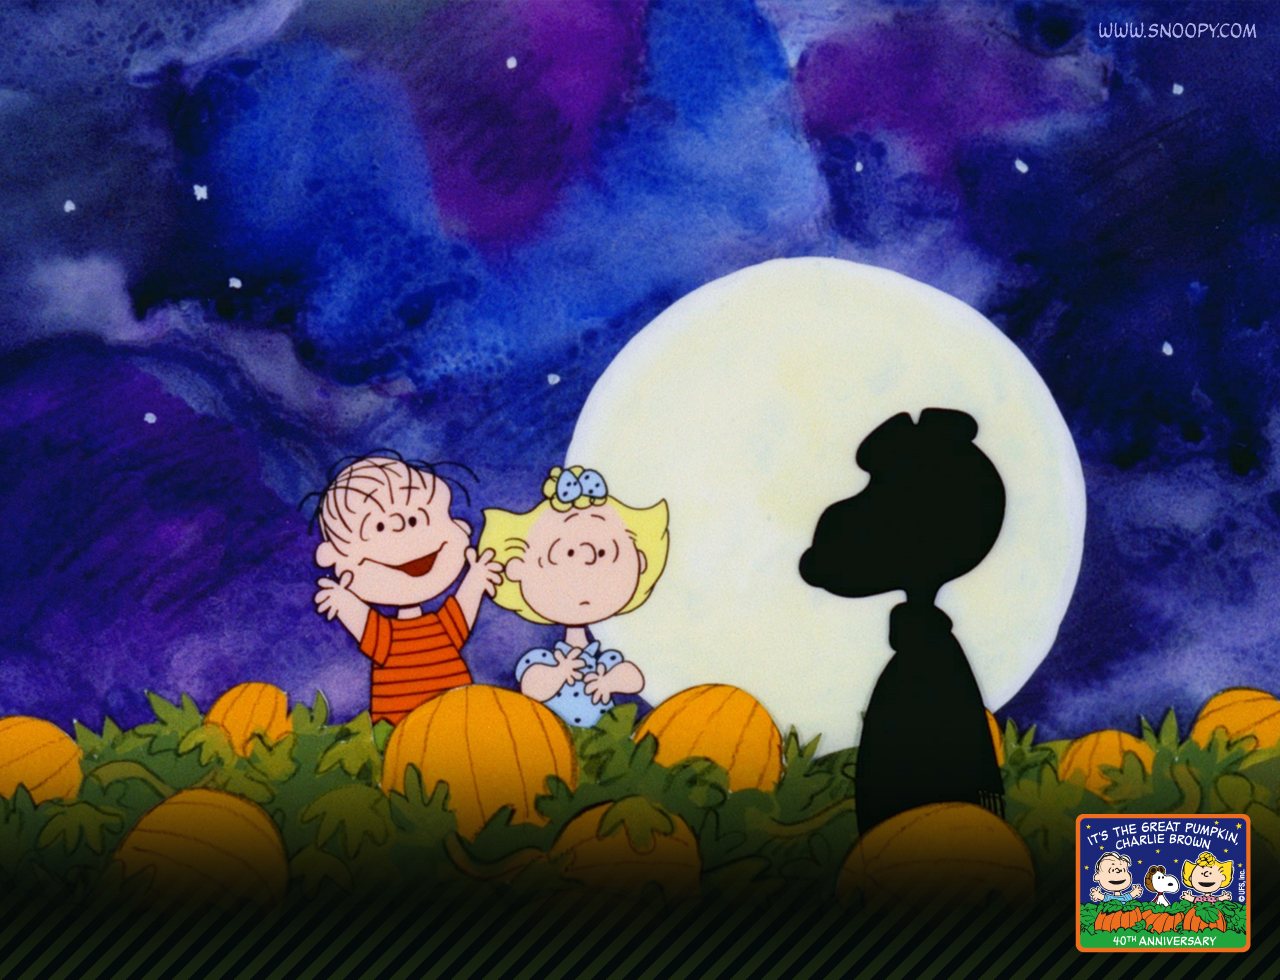 Peanuts Halloween Wallpaper Disney Halloween Wallpaper Charlie Brown 1280x980